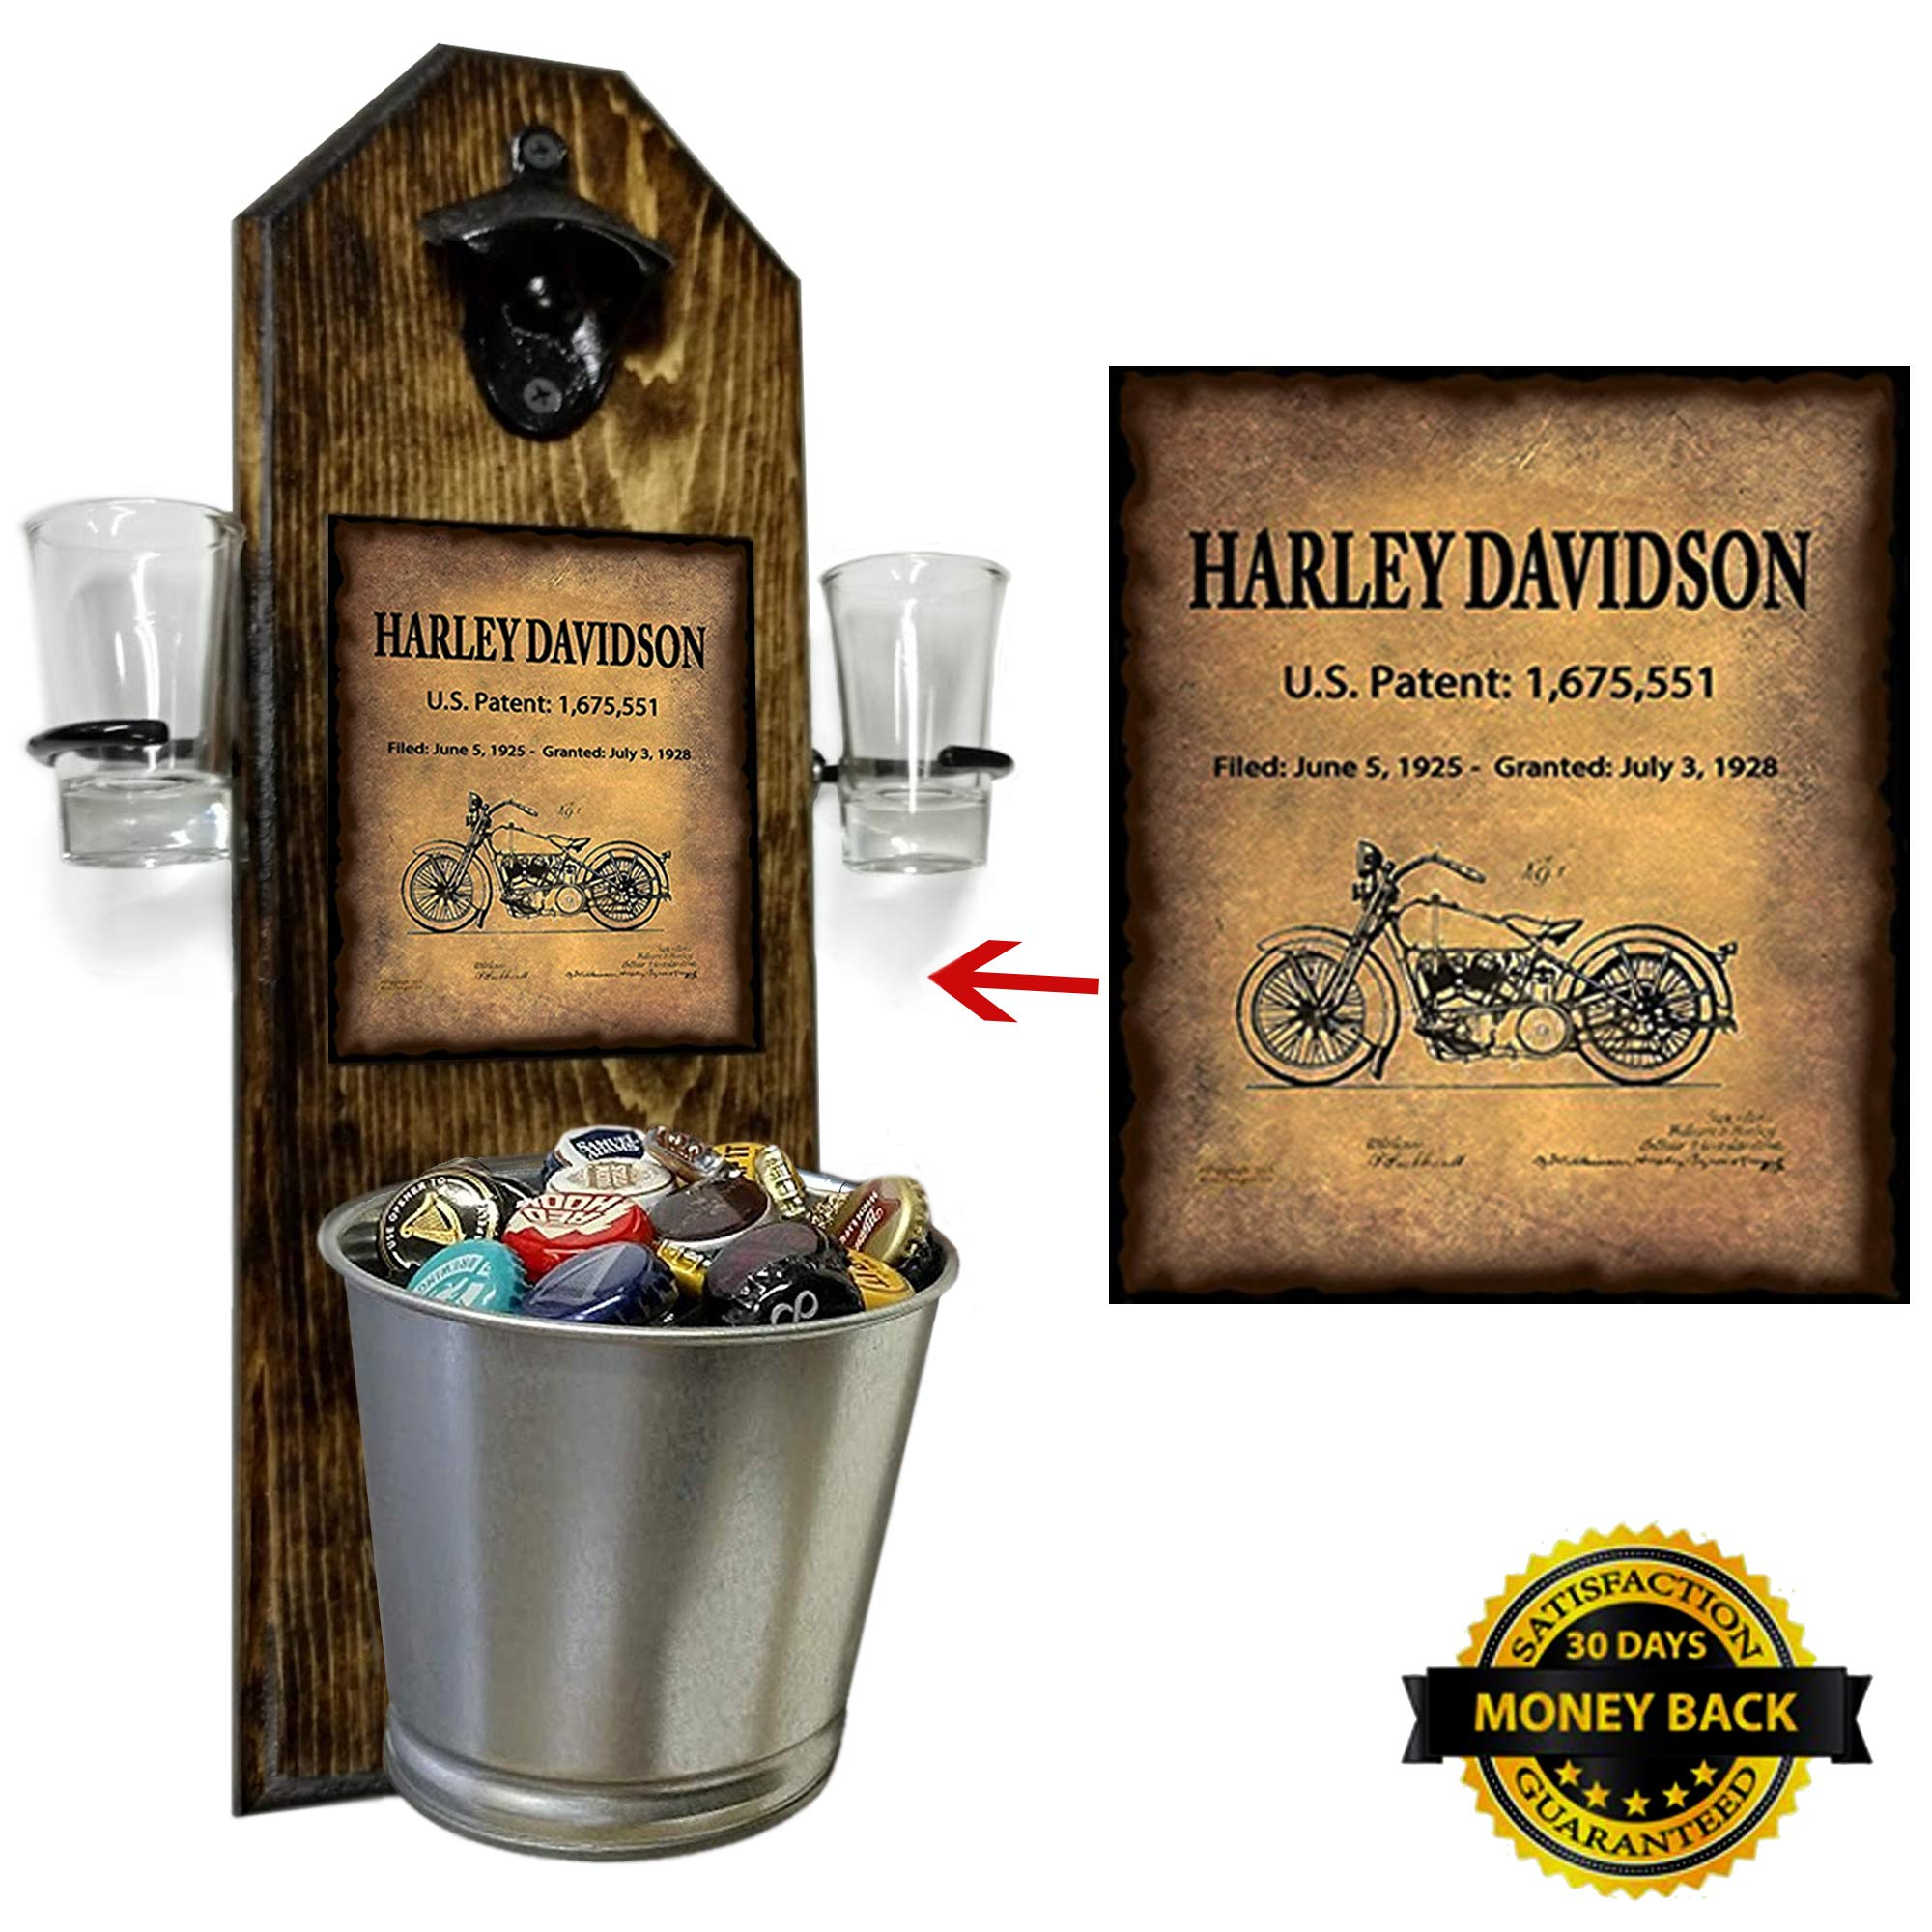 Deluxe Harley Davidson Patent Shot Glass Holder with 2 Shot Glasses, Bottle Opener and Cap Catcher - Handcrafted by a Vet - 100% Solid Pine 3/4'' Thick - Cast Iron Bottle Opener and Galvanized Bucket by CherryPic Junction (Image #1)